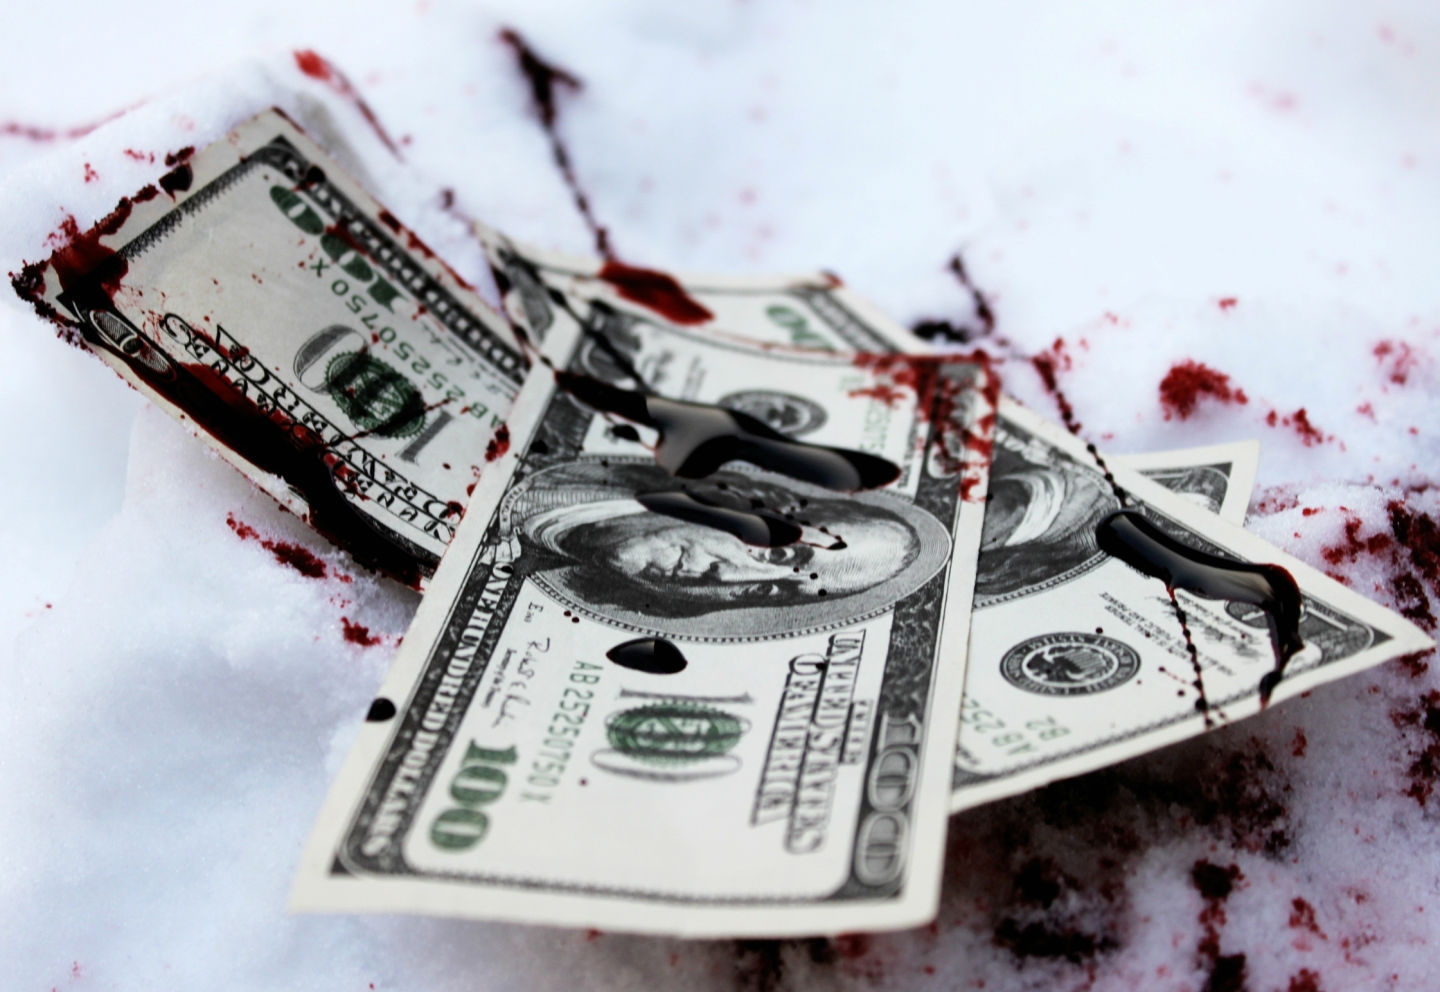 Hd Knife Wallpaper Blood Wallpaper And Background Image 1440x992 Id 239711